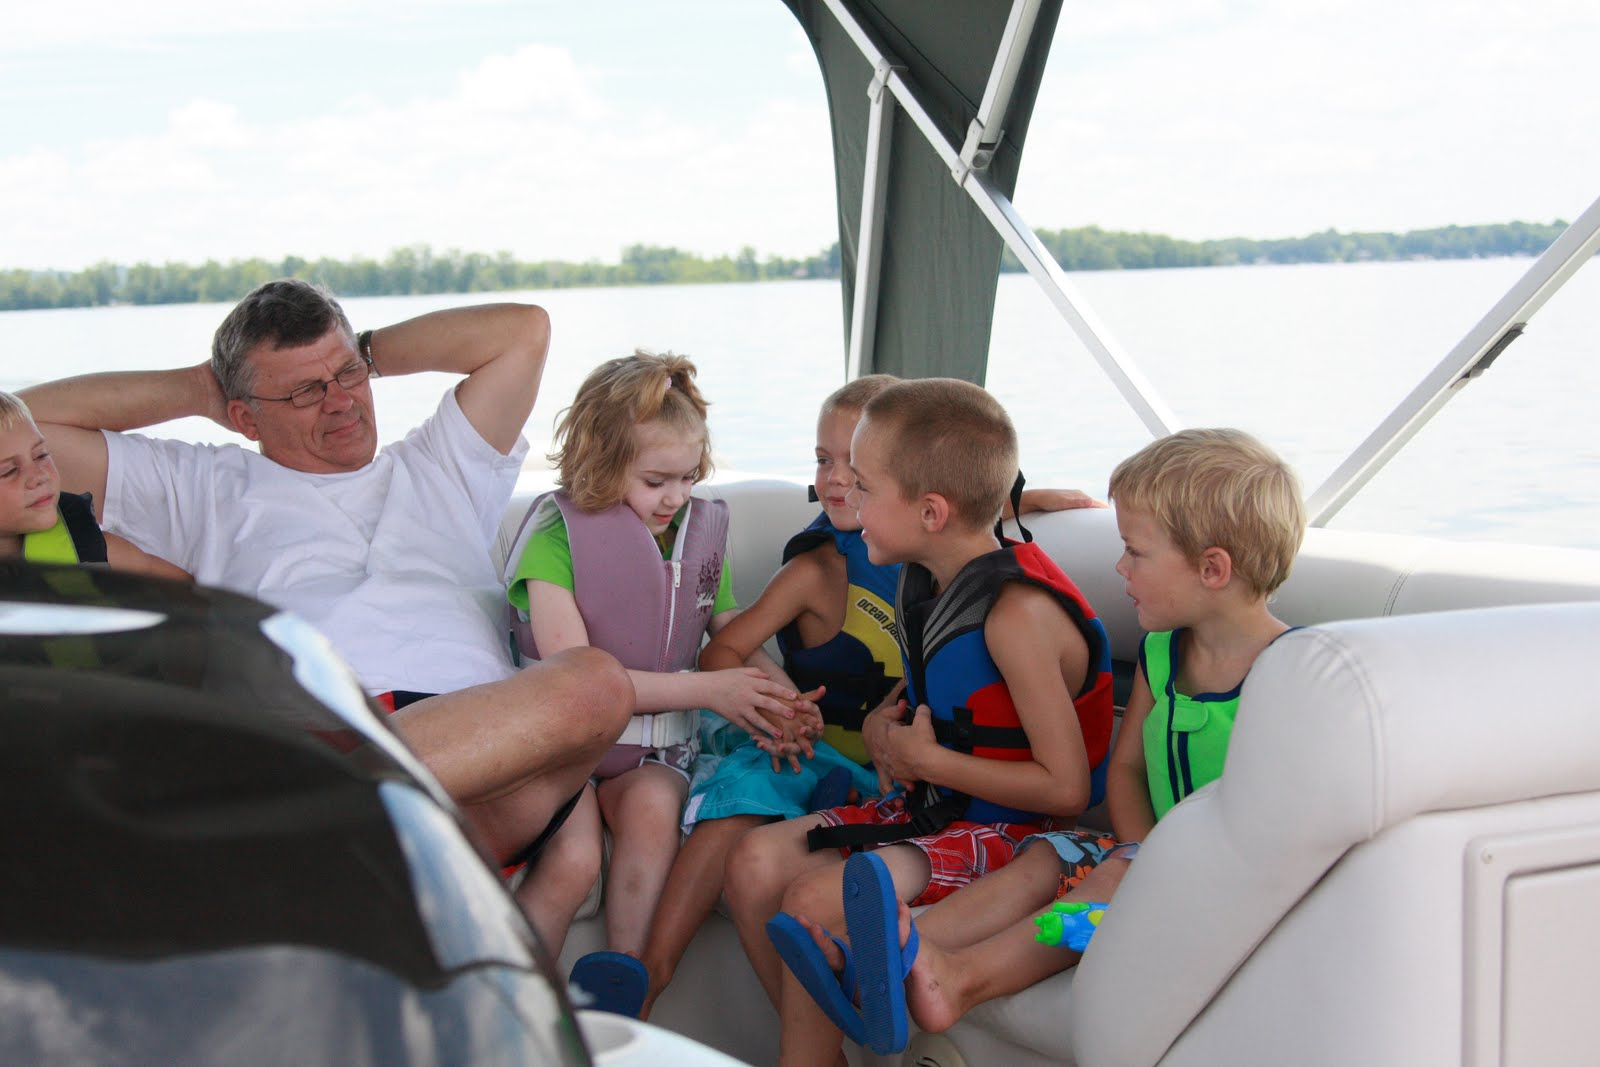 But Grandpas Surprise Made It Even Better He Was Able To Use The Bosss Tube As Well And Pulled The Boys And Morgan And Later Dylan Around The Lake